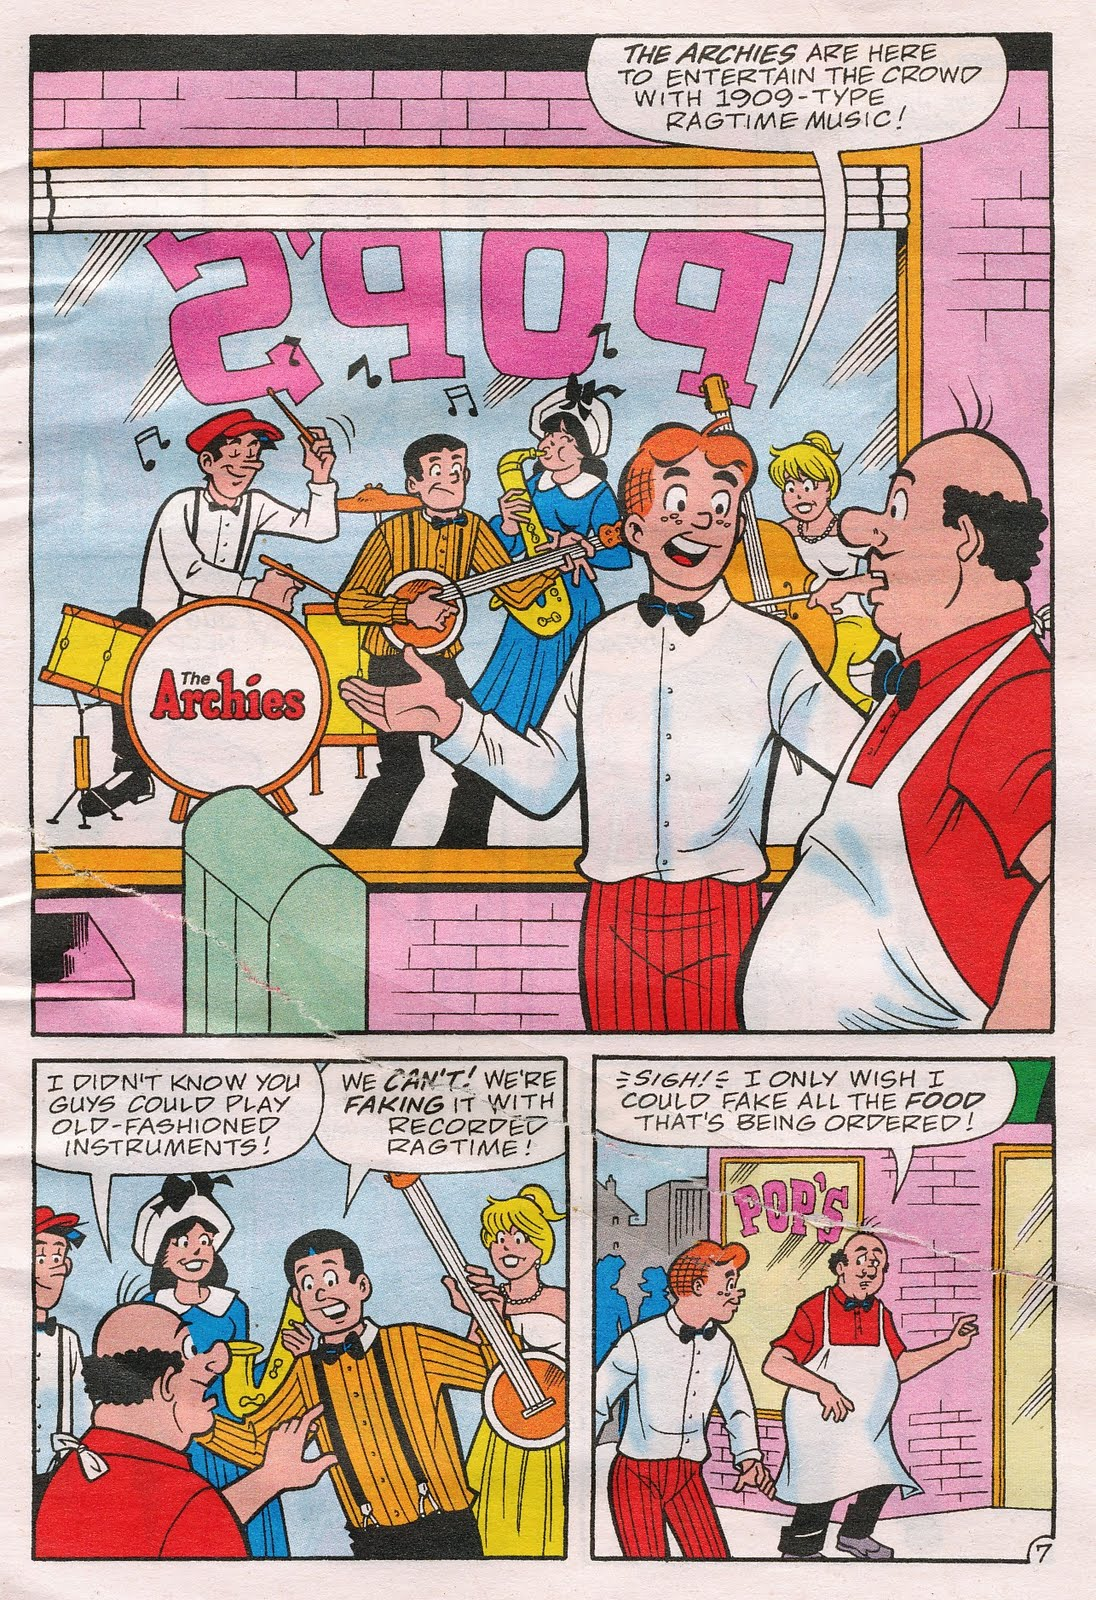 [archie+ragtime]